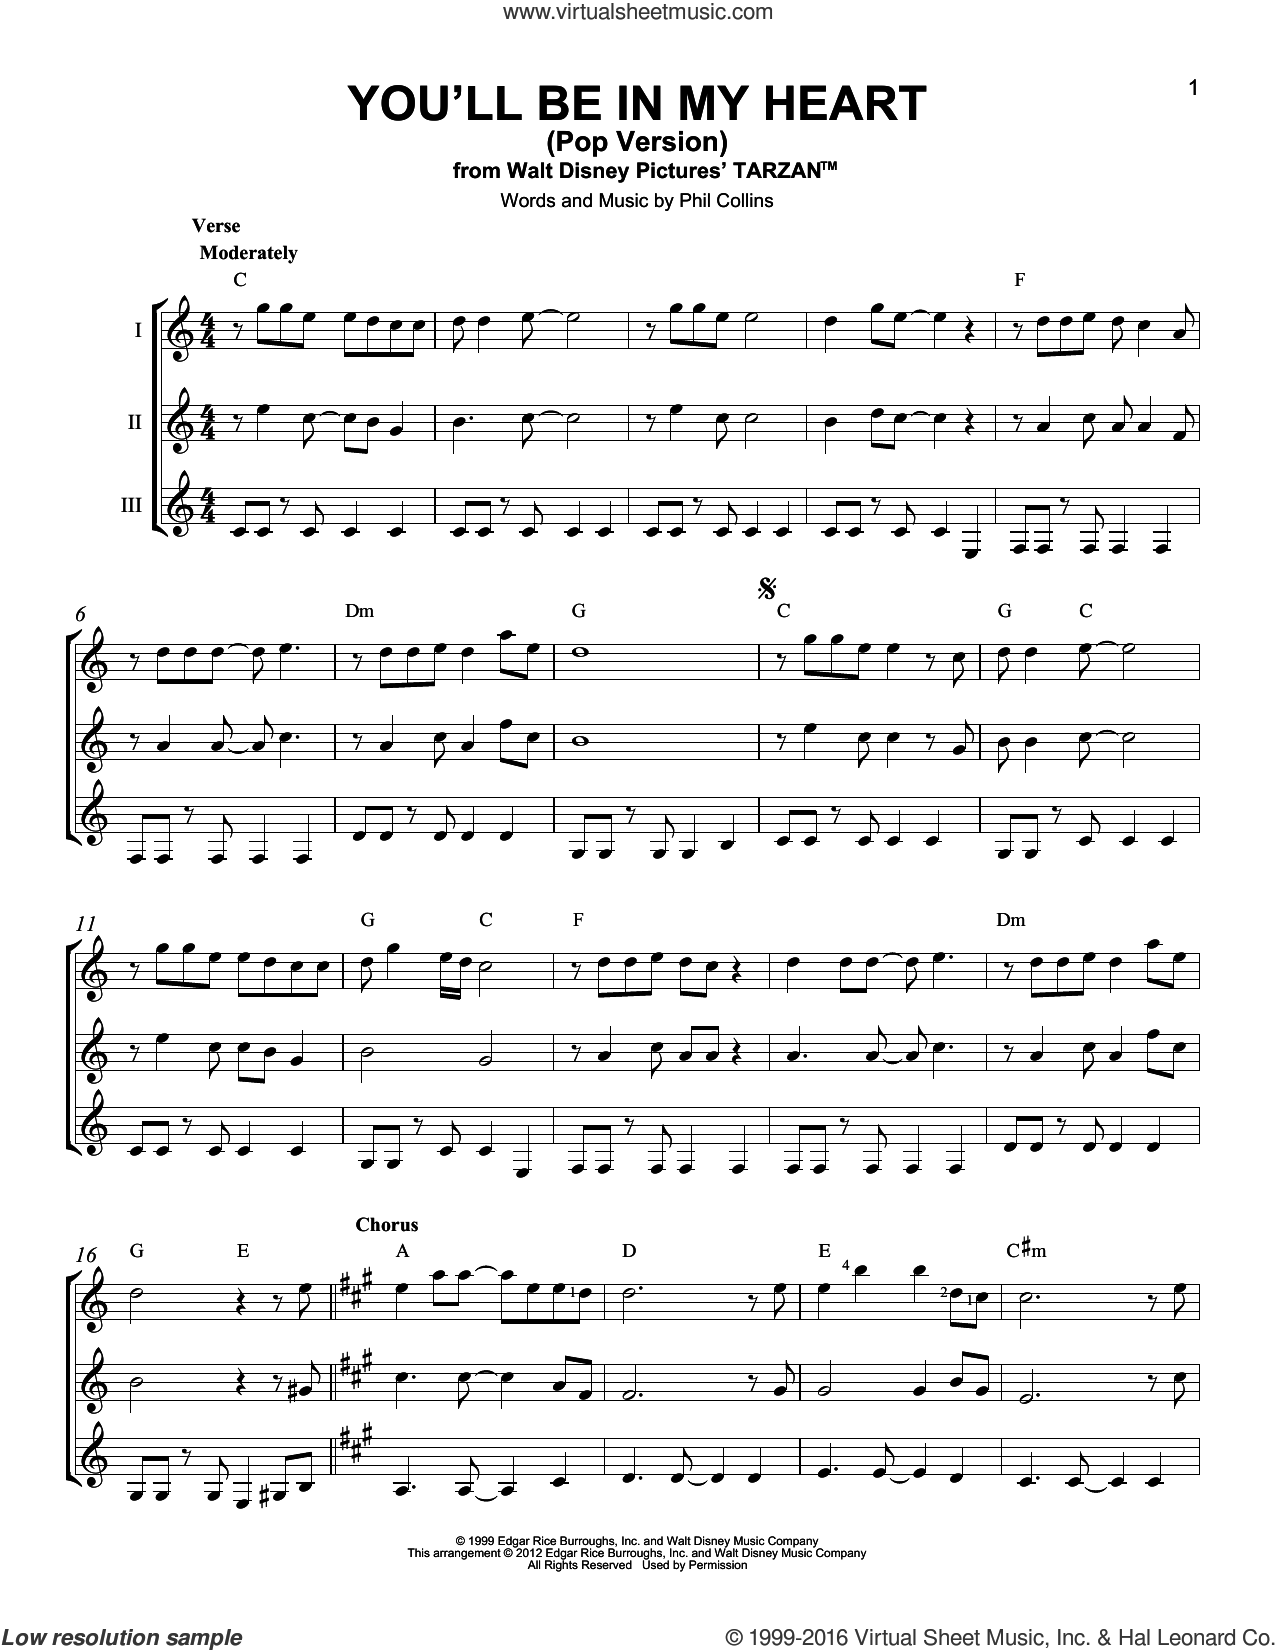 You'll Be In My Heart (Pop Version) sheet music for guitar ensemble by Phil Collins, intermediate skill level